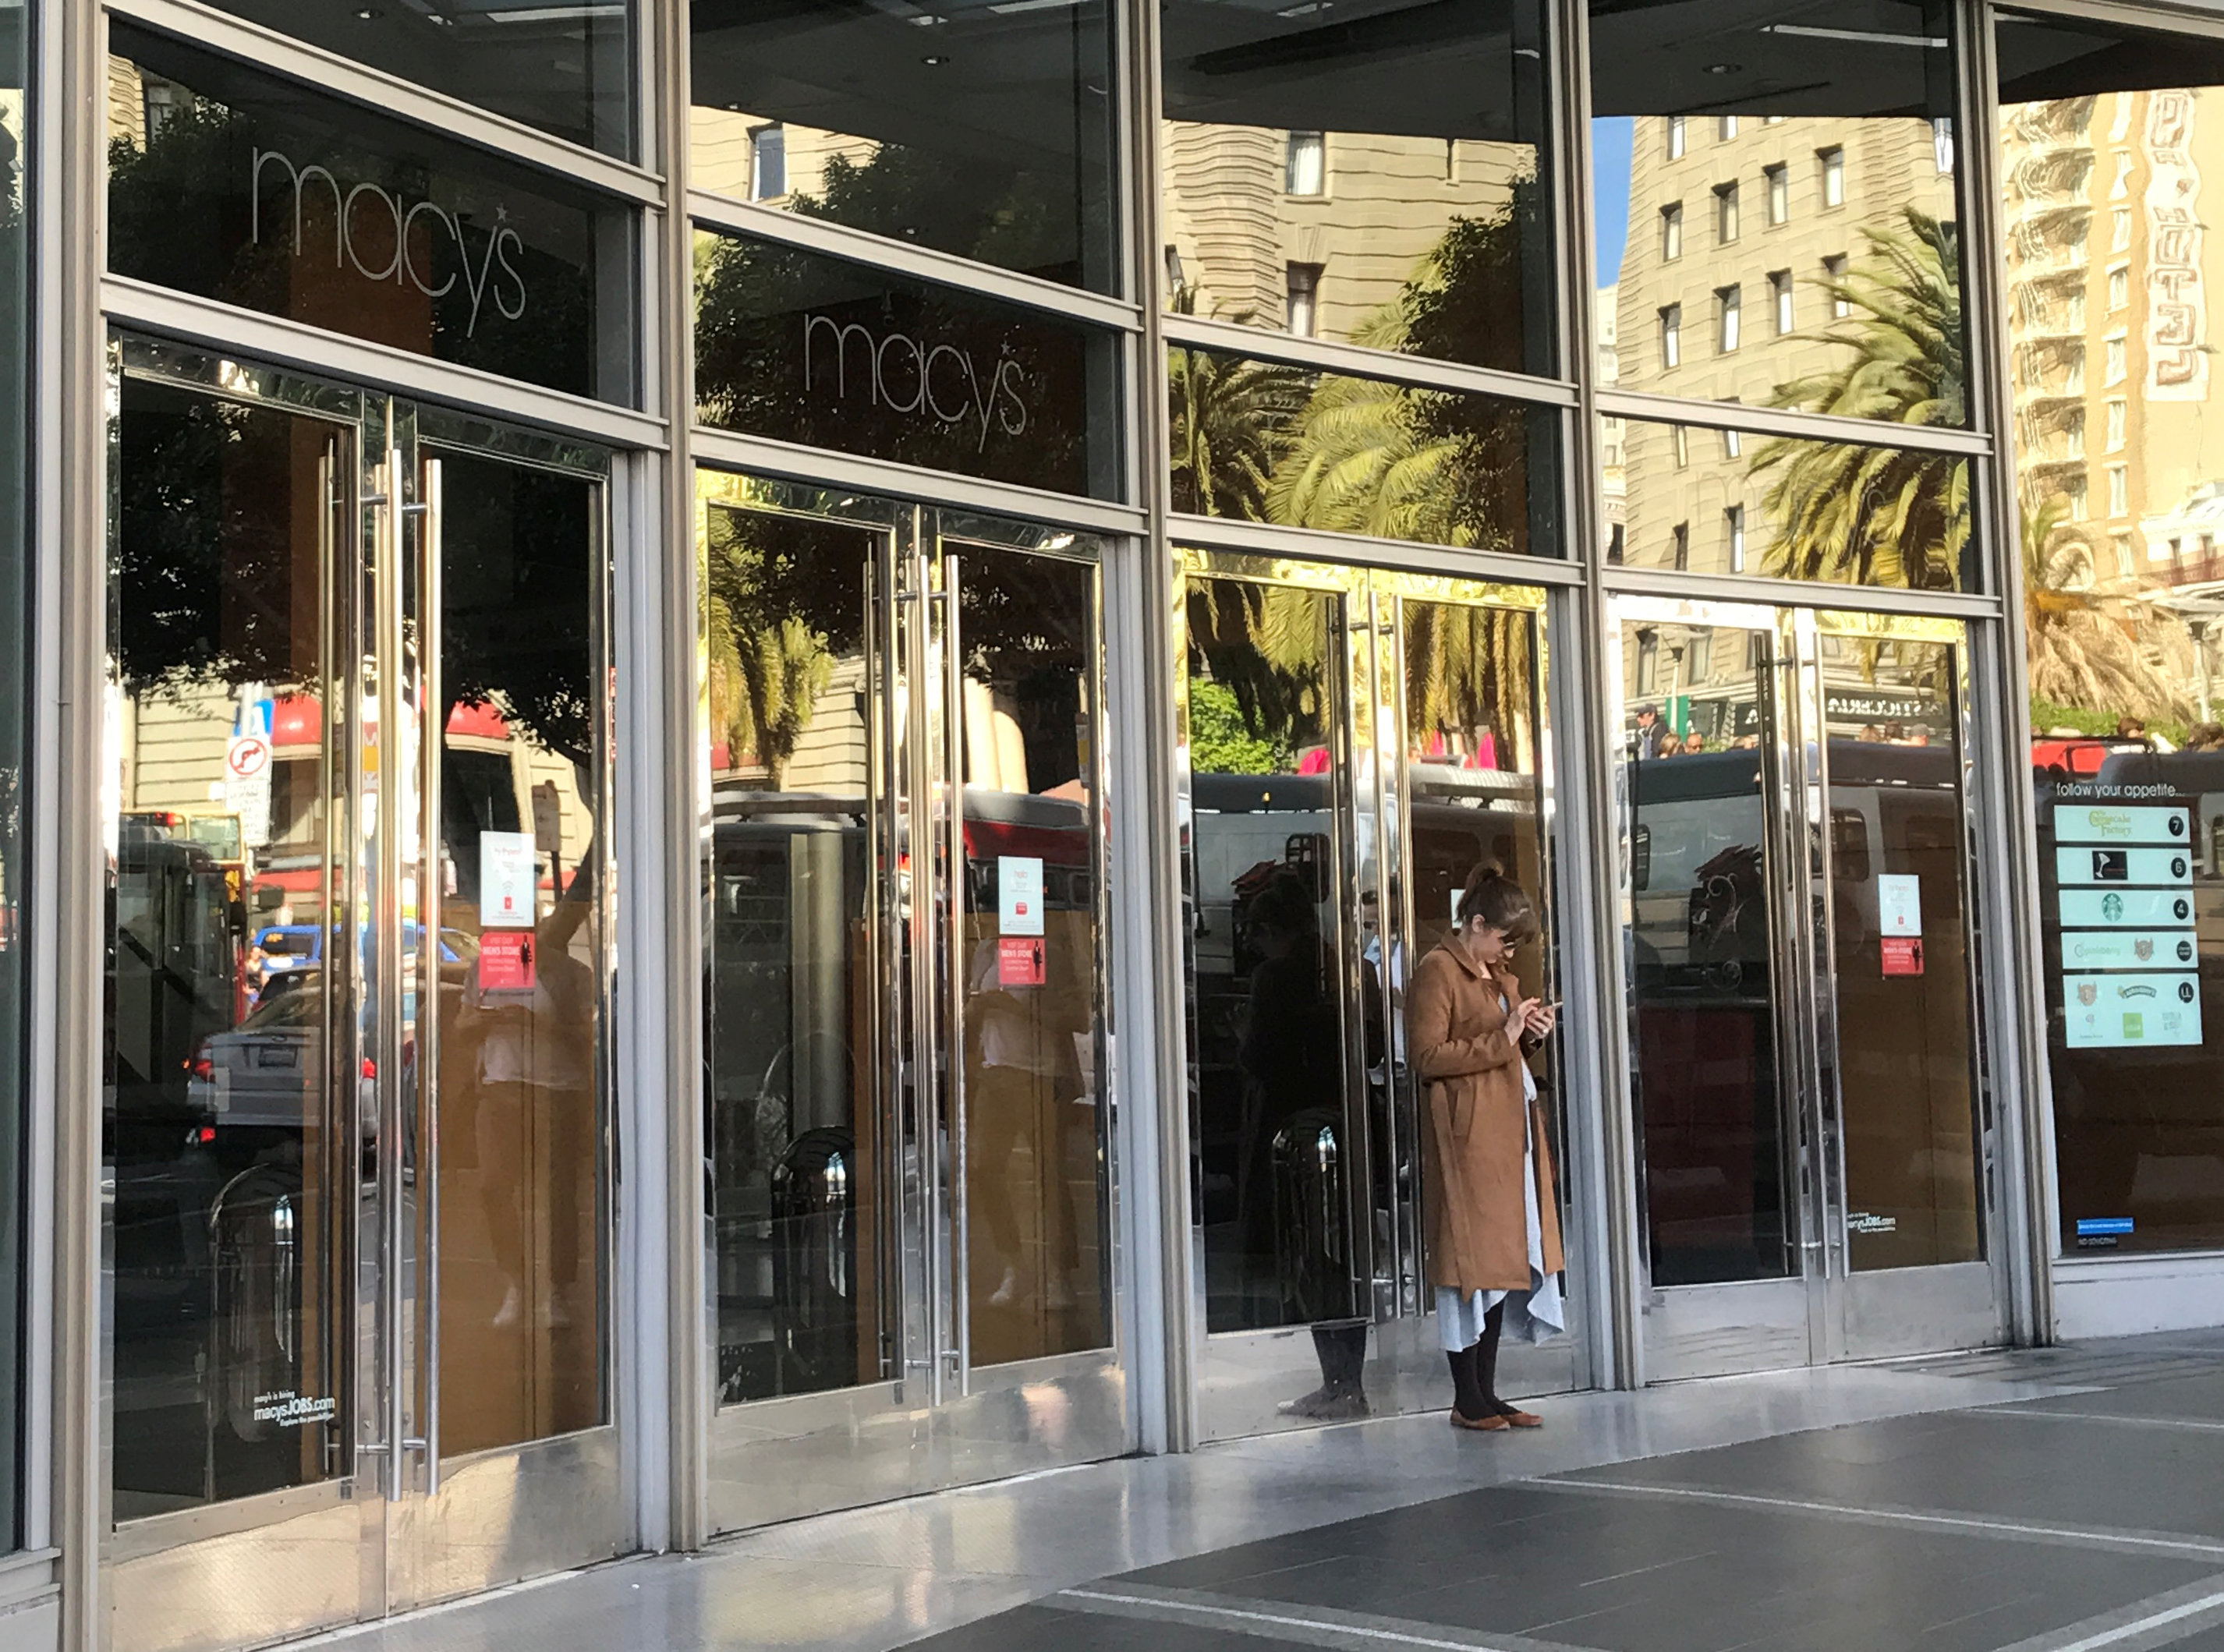 An employee stands outside the closed doors of Macy's department store, during a power cut in San Francisco, Calif., April 21, 2017.  (REUTERS/Alexandria Sage)